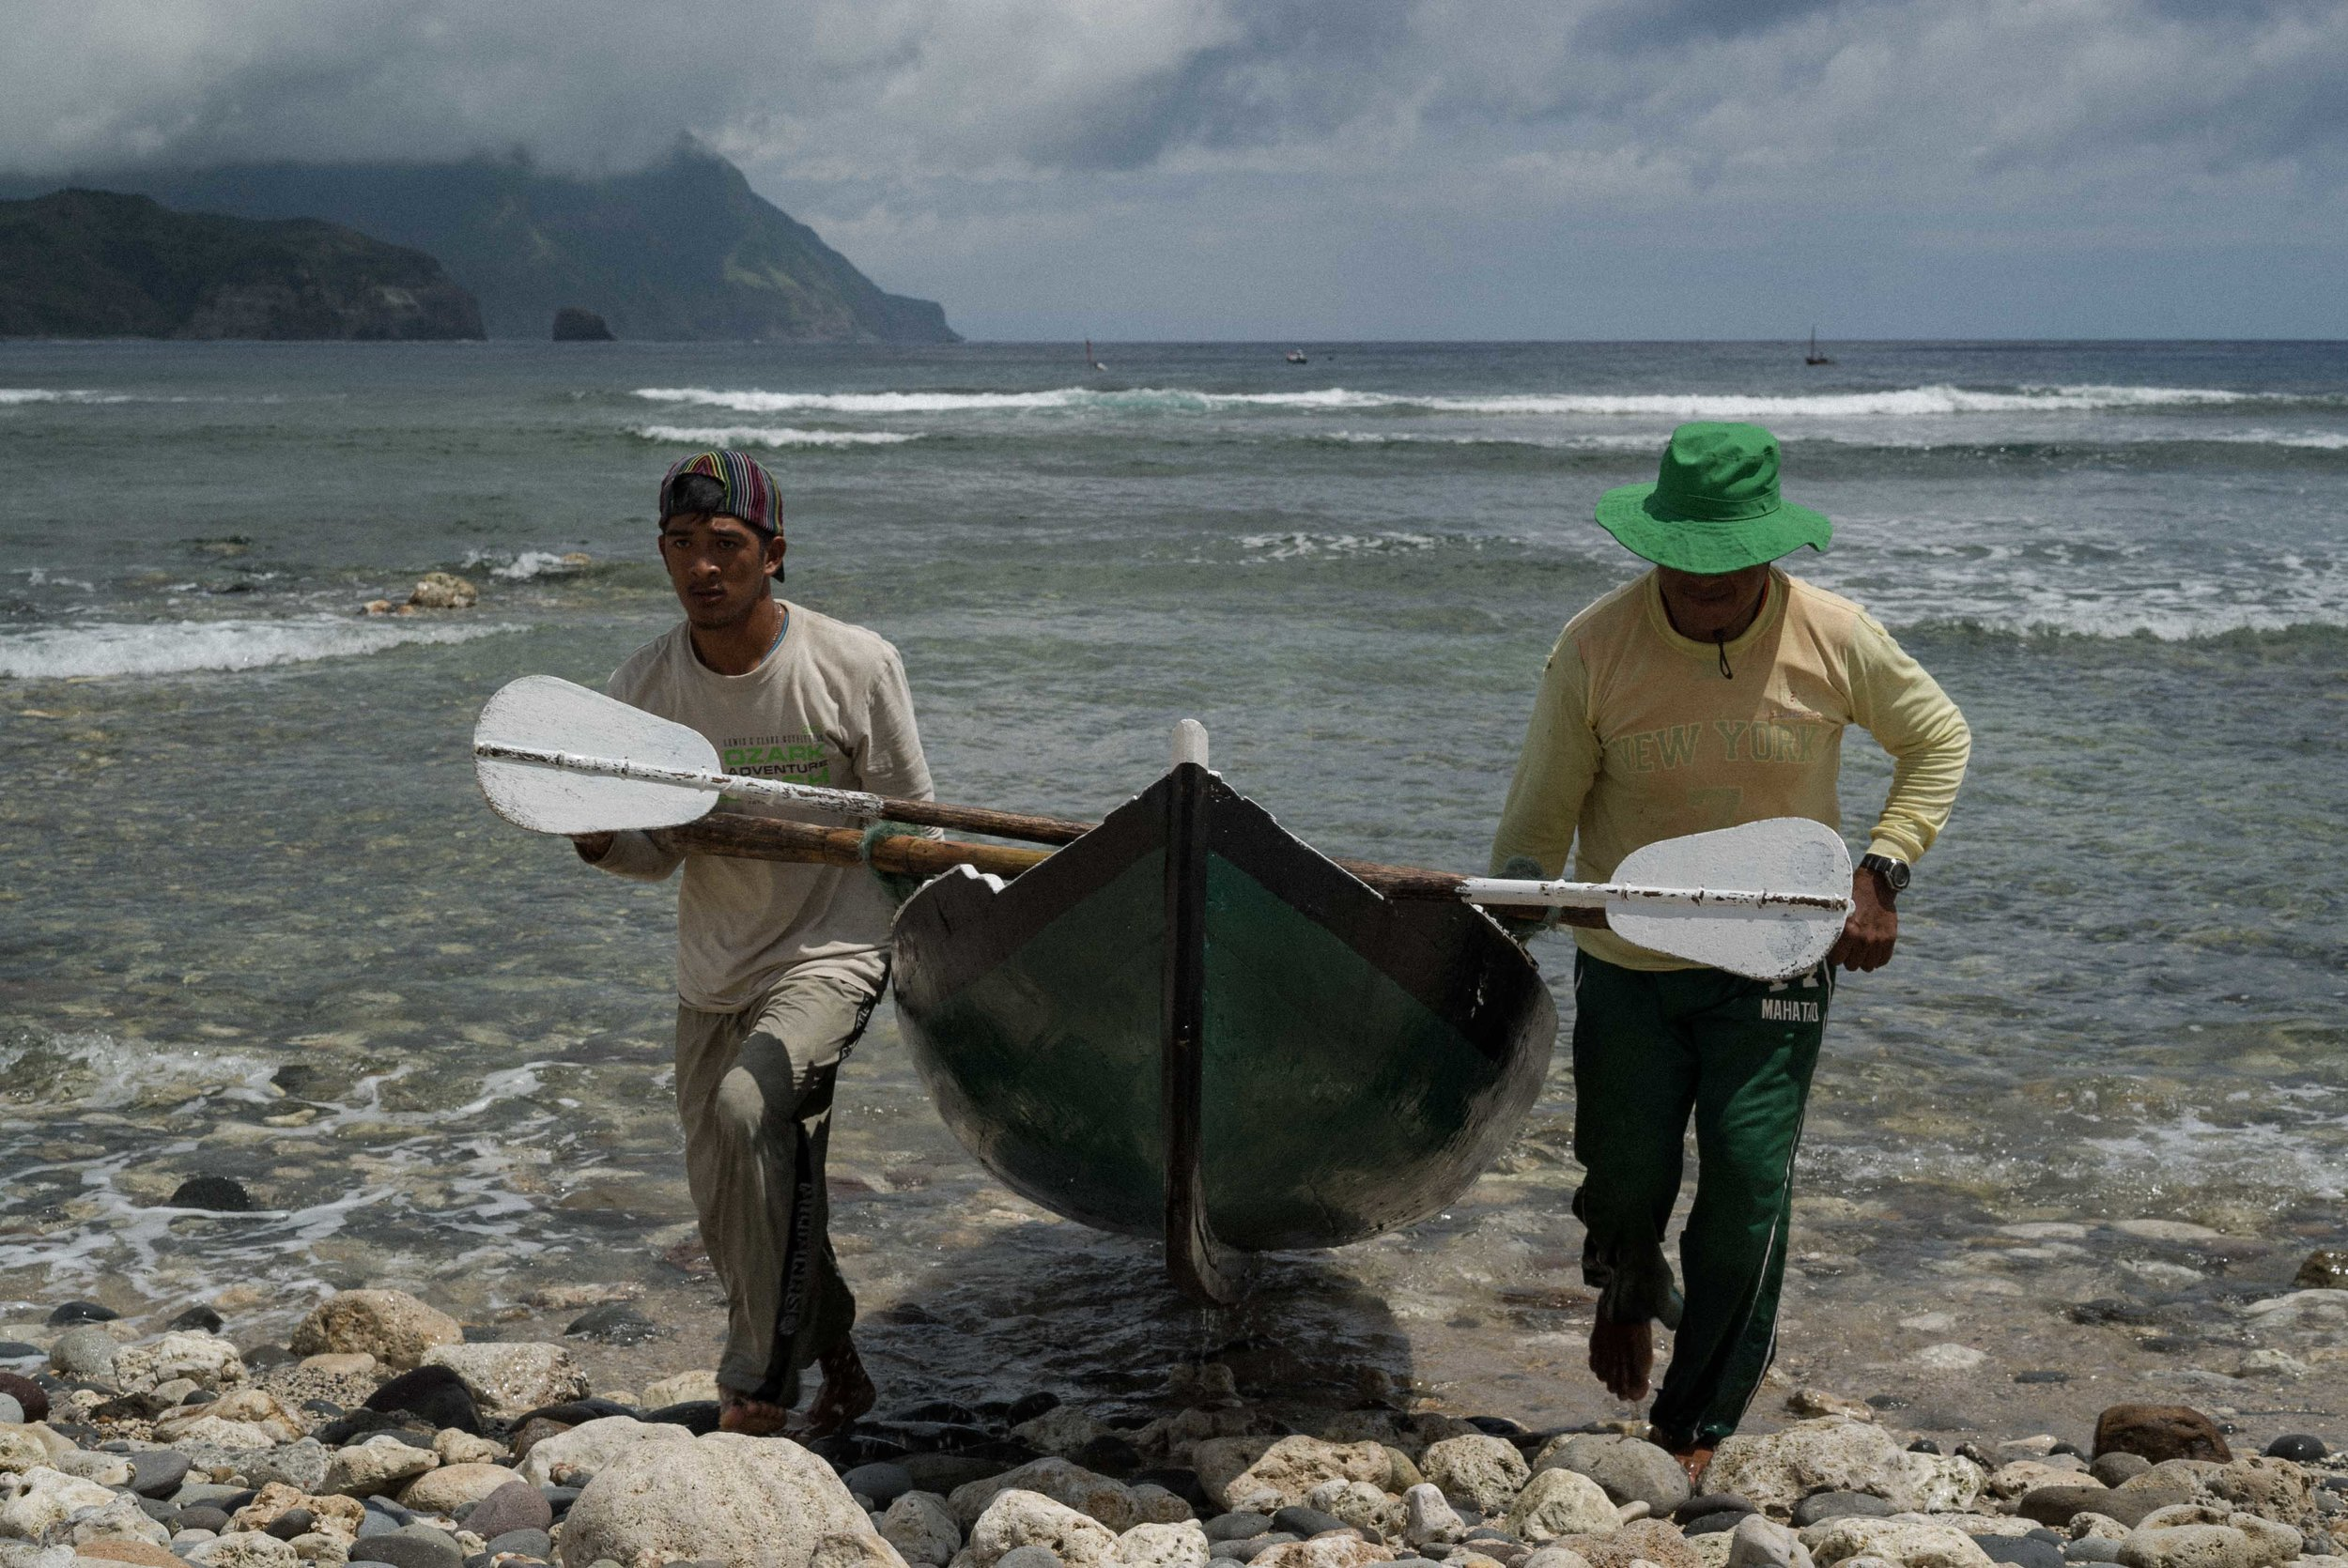 Fellow fishermen help carry other boats.